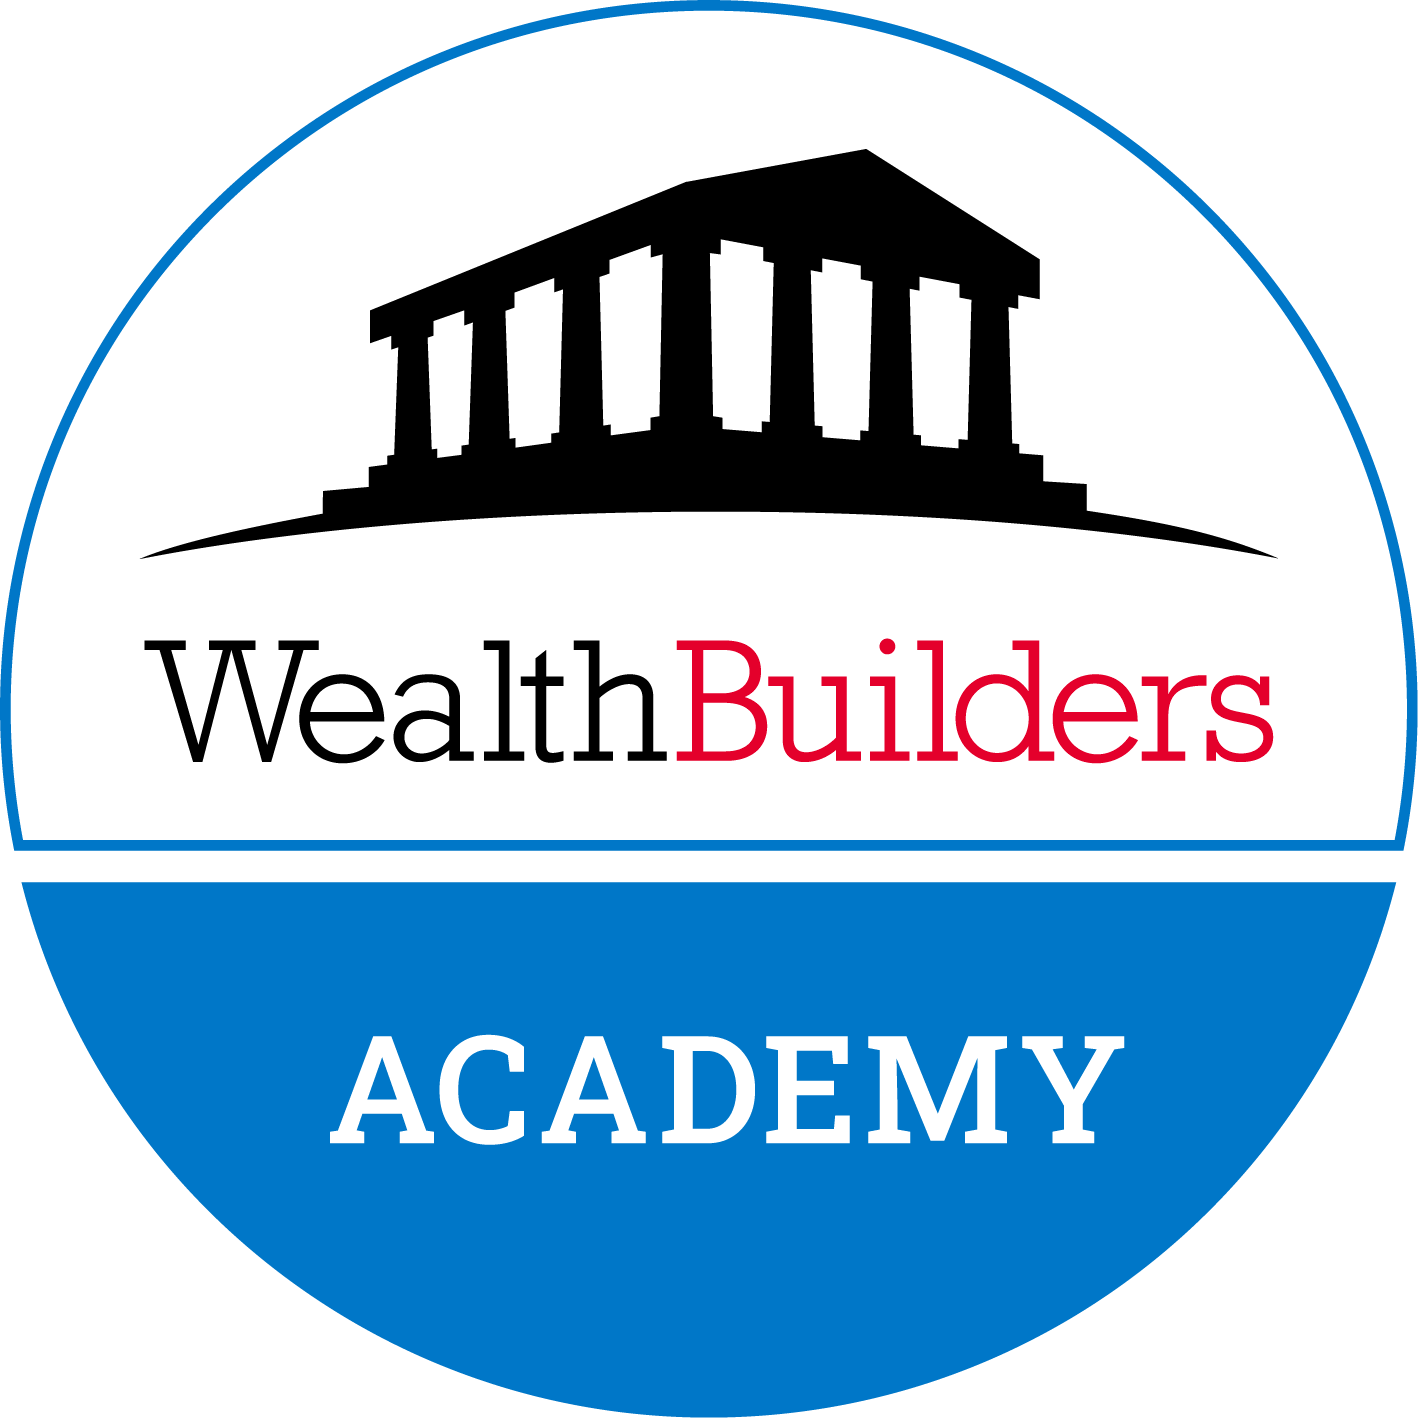 Football stadium of Wealth Builders to be filled by new Academy.